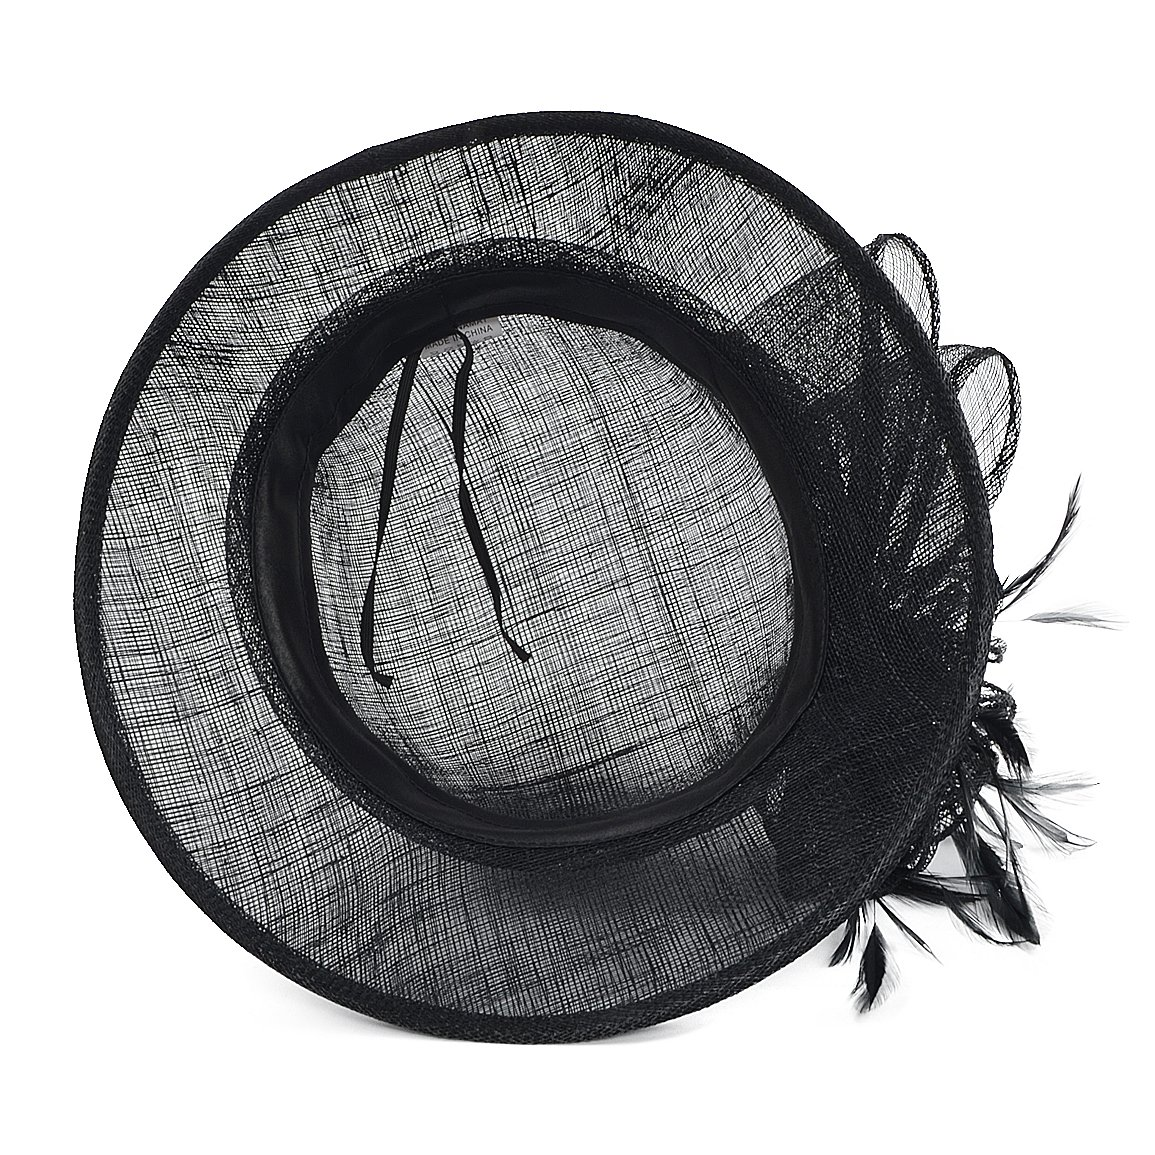 FORBUSITE Occasion Church Wedding Sinamay Cloche Hats for Women SM122 (Black) by FORBUSITE (Image #4)